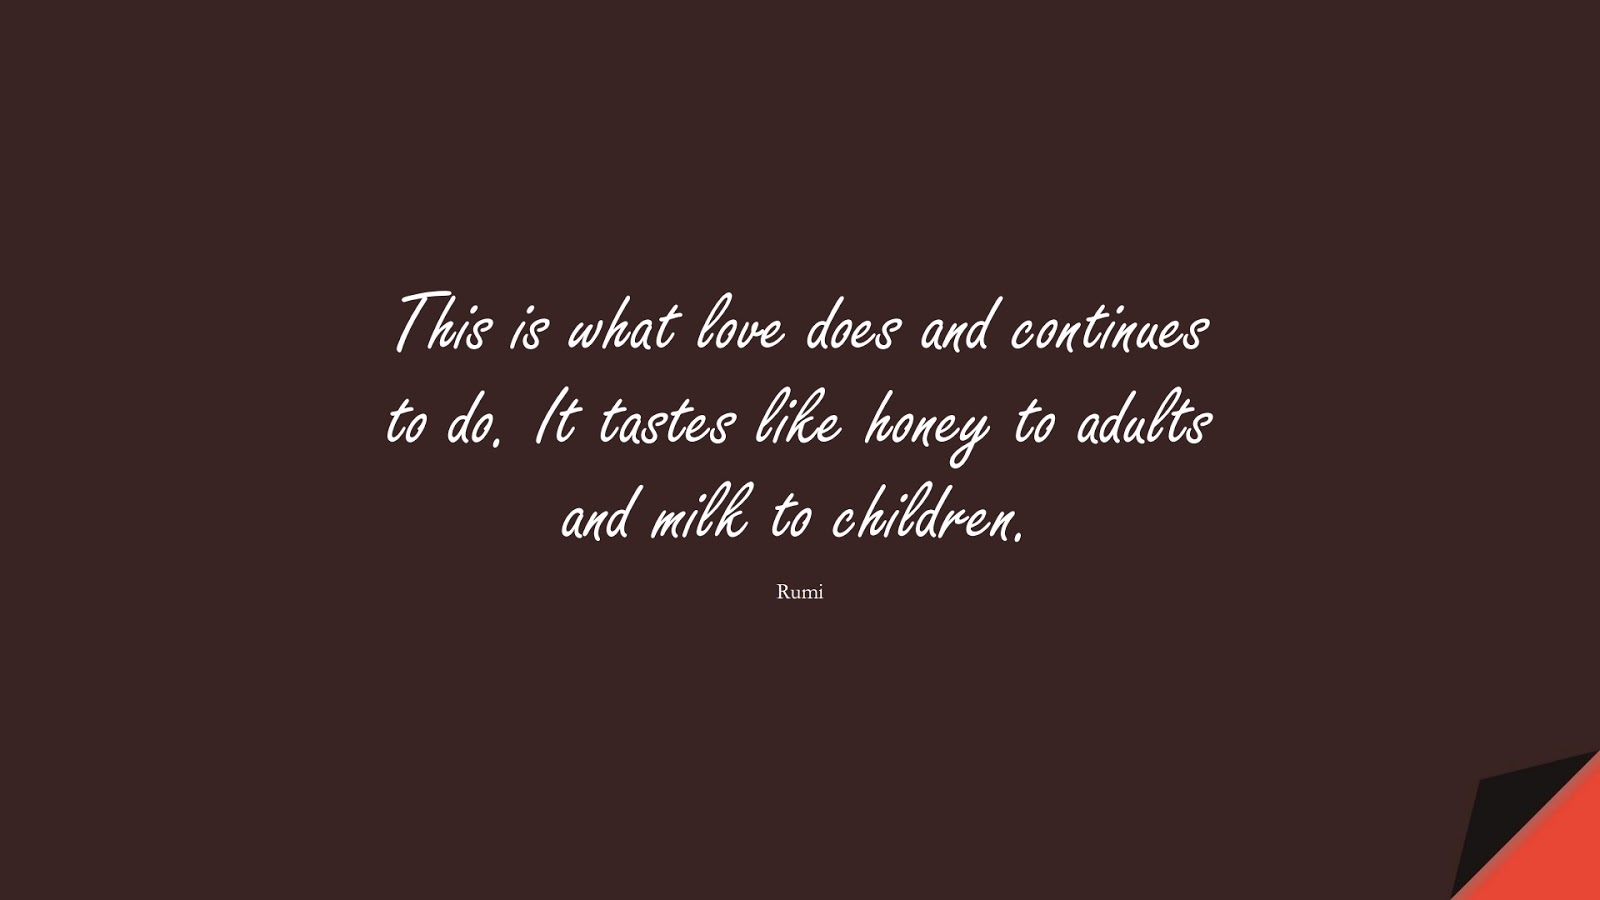 This is what love does and continues to do. It tastes like honey to adults and milk to children. (Rumi);  #RumiQuotes